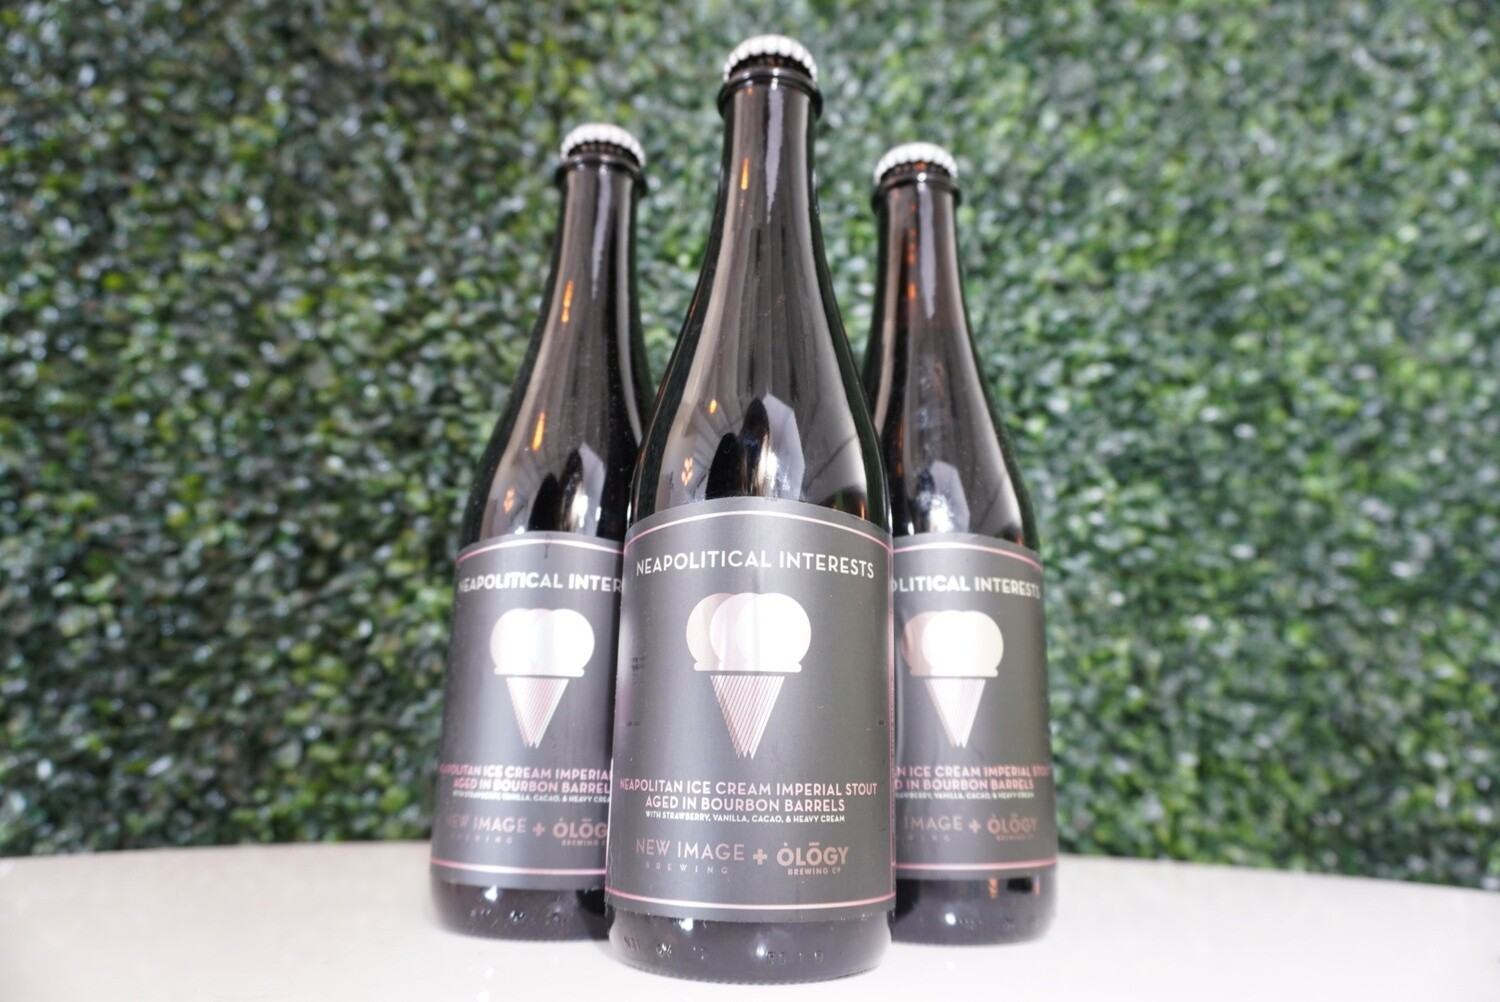 New Image Brewing - Barrel Aged Neapolitical Interests - BA Imperial Stout - 13.85% ABV - 500ml Bottle